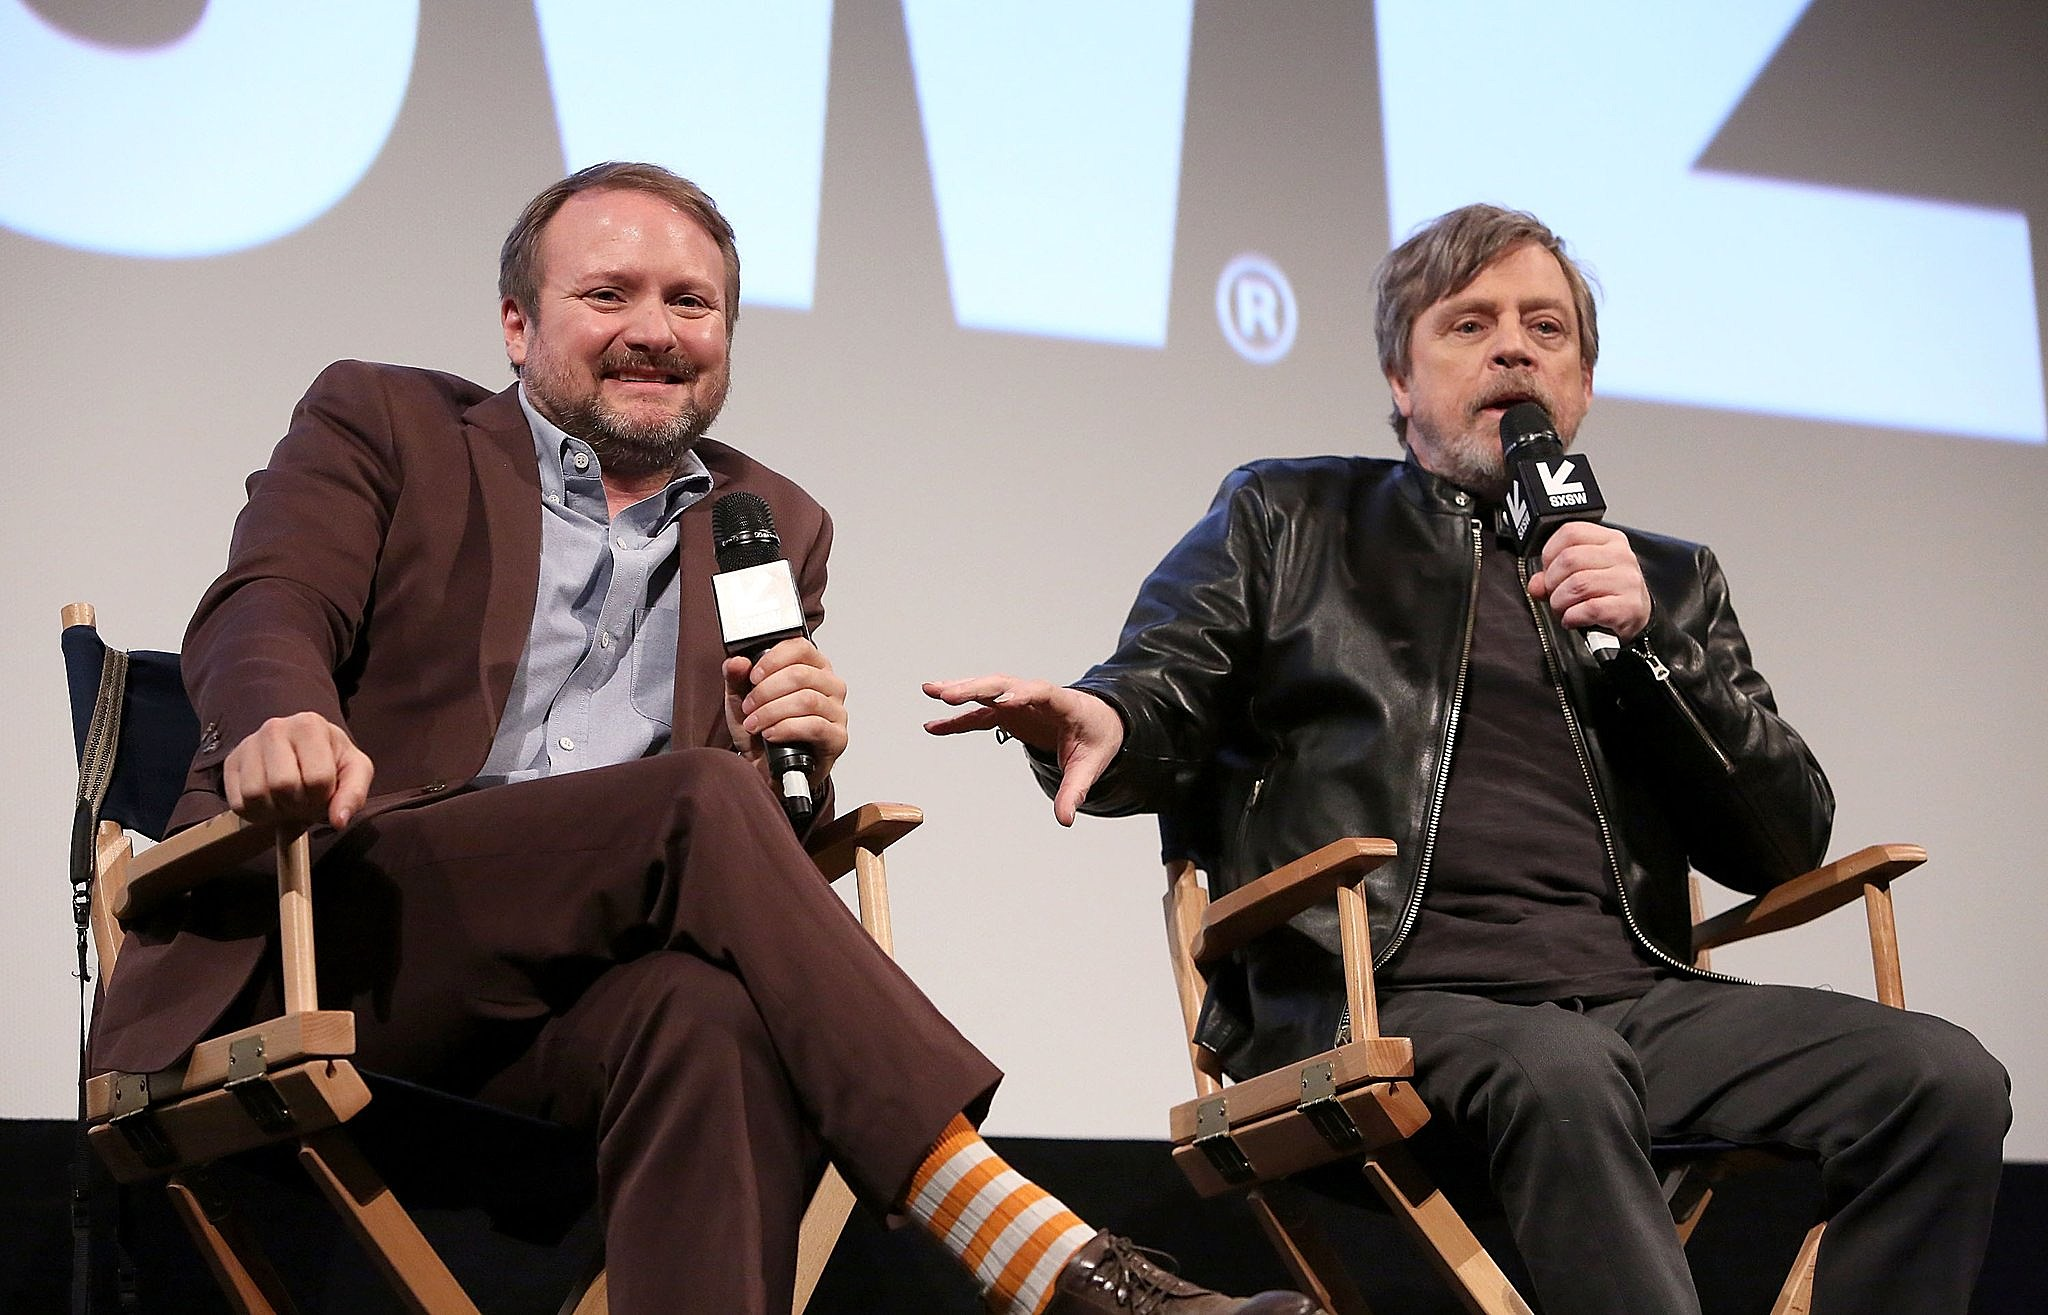 Rian Johnson and Mark Hamill @ SXSW (via @starwars)